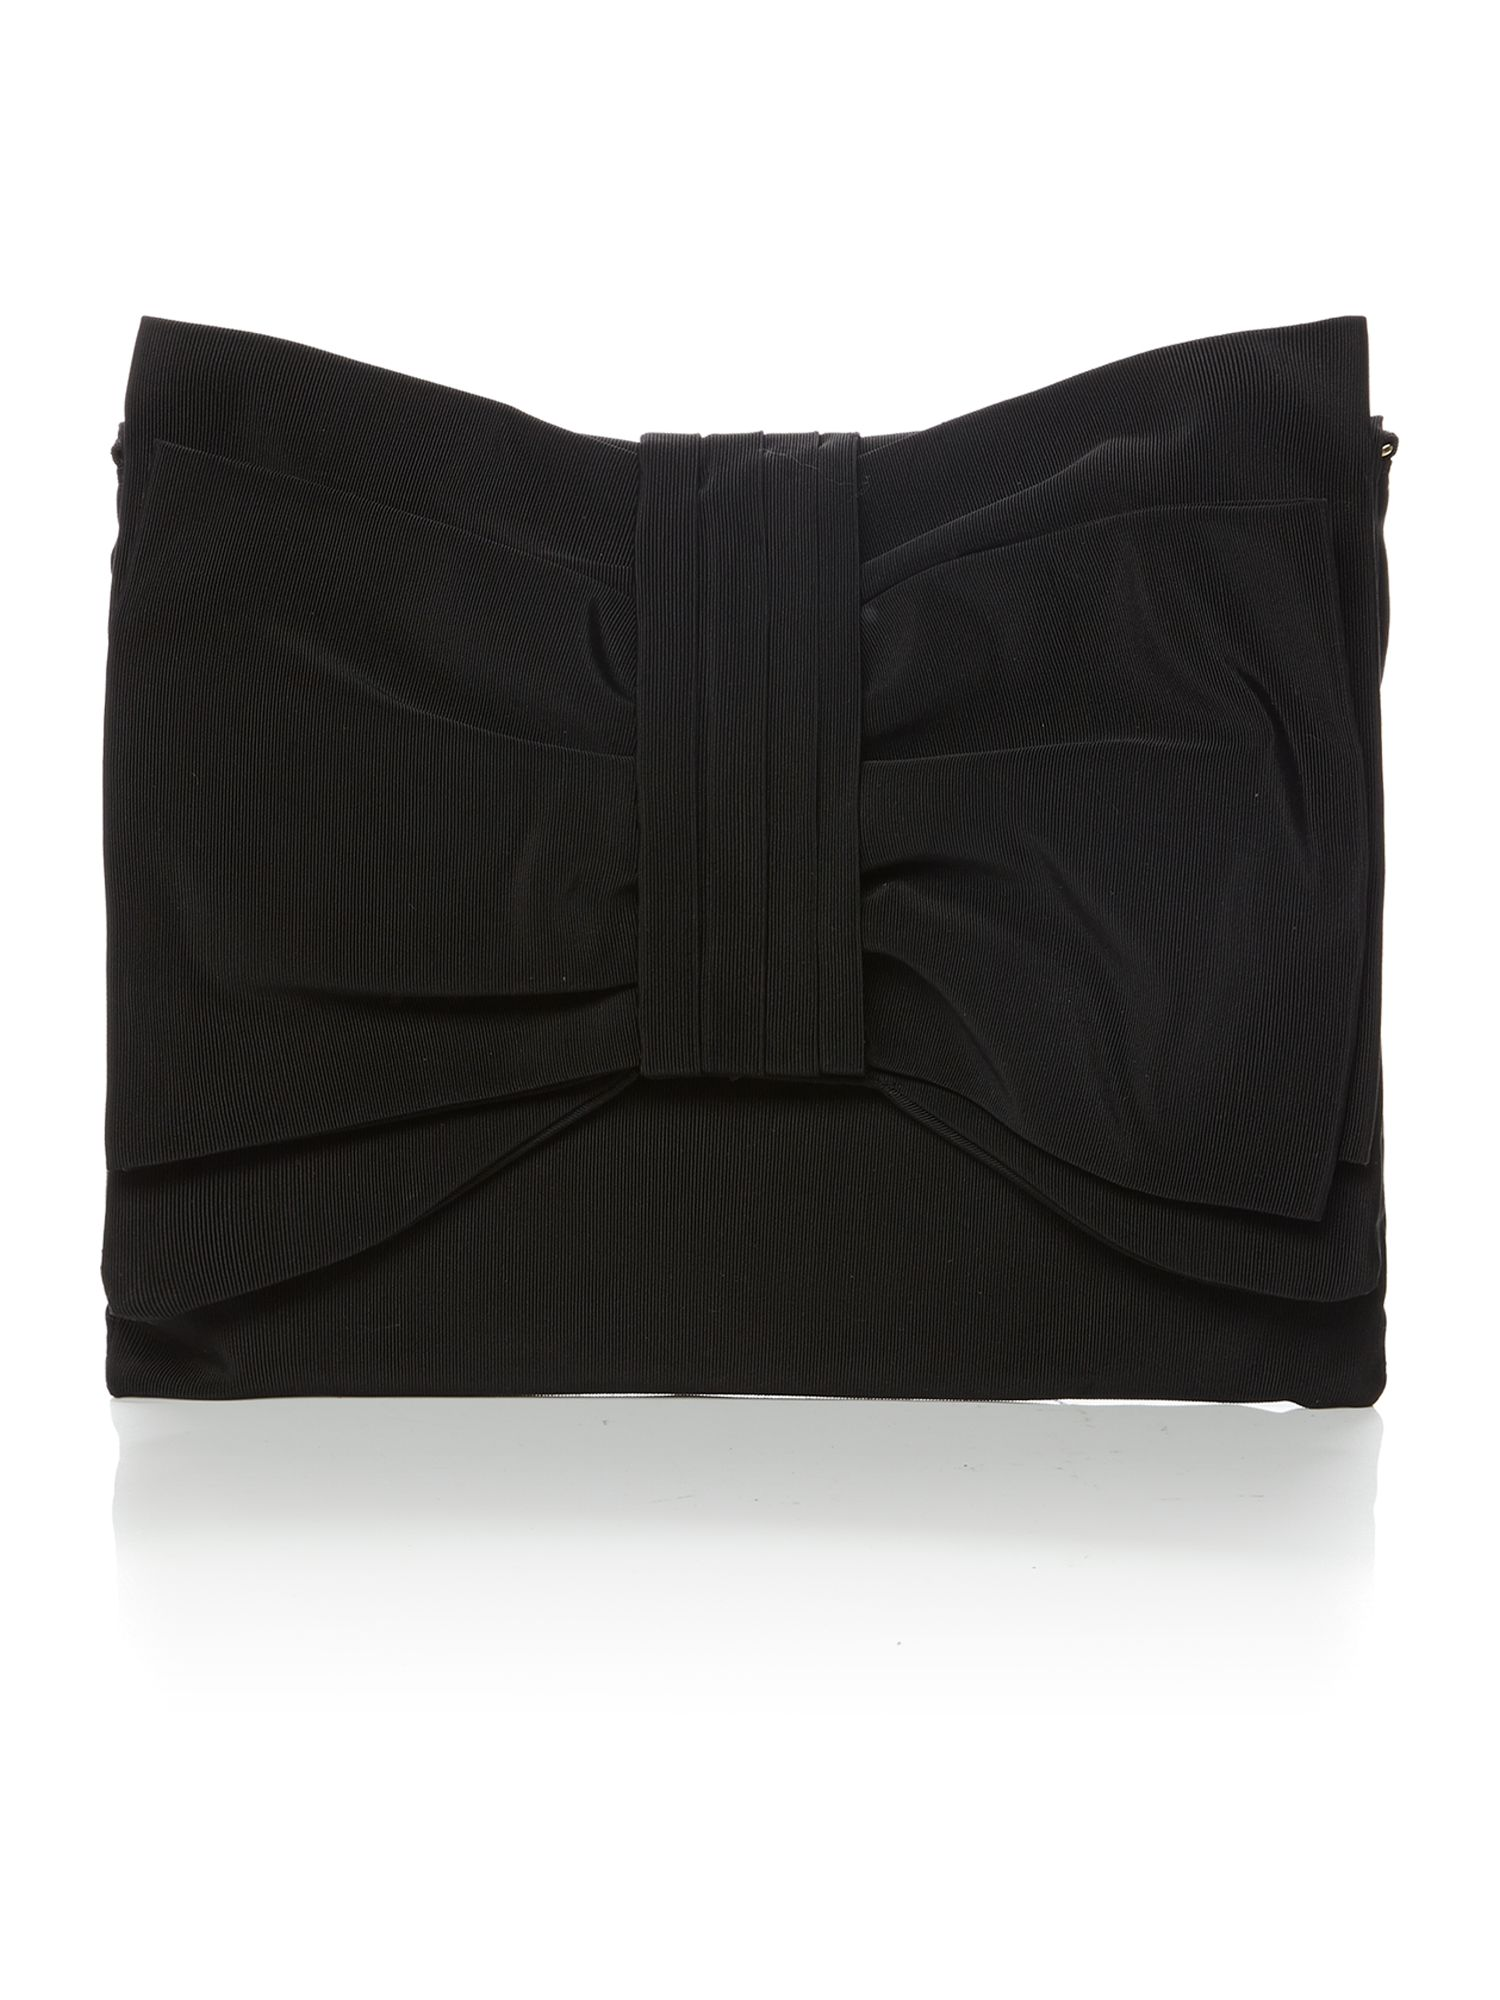 Black grosgrain shoulder bag